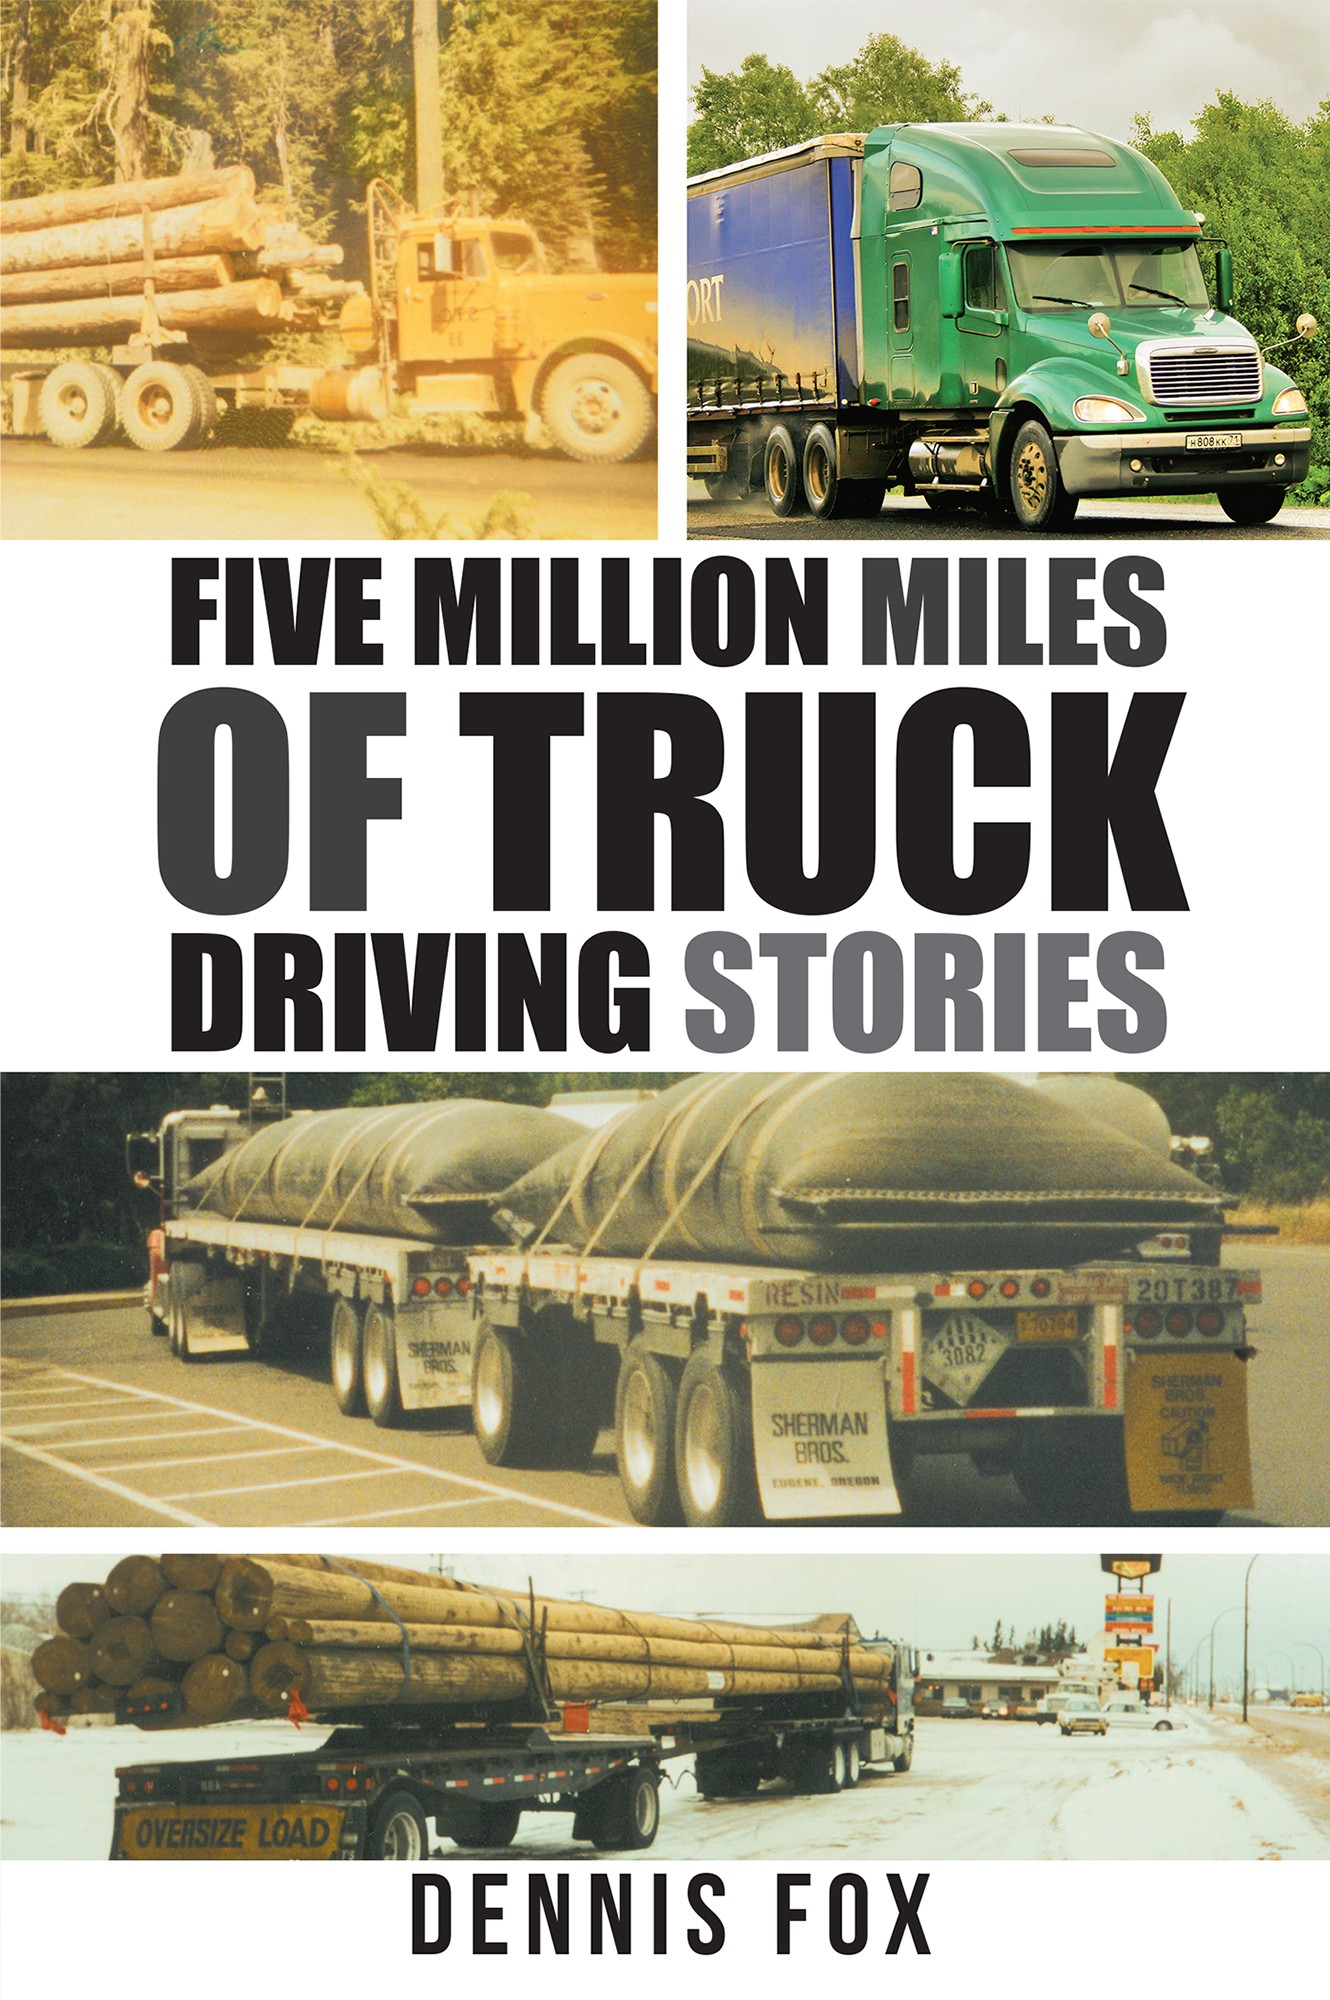 Dennis Foxs New Book Five Million Miles of Truck Driving Stories is a True Story of the